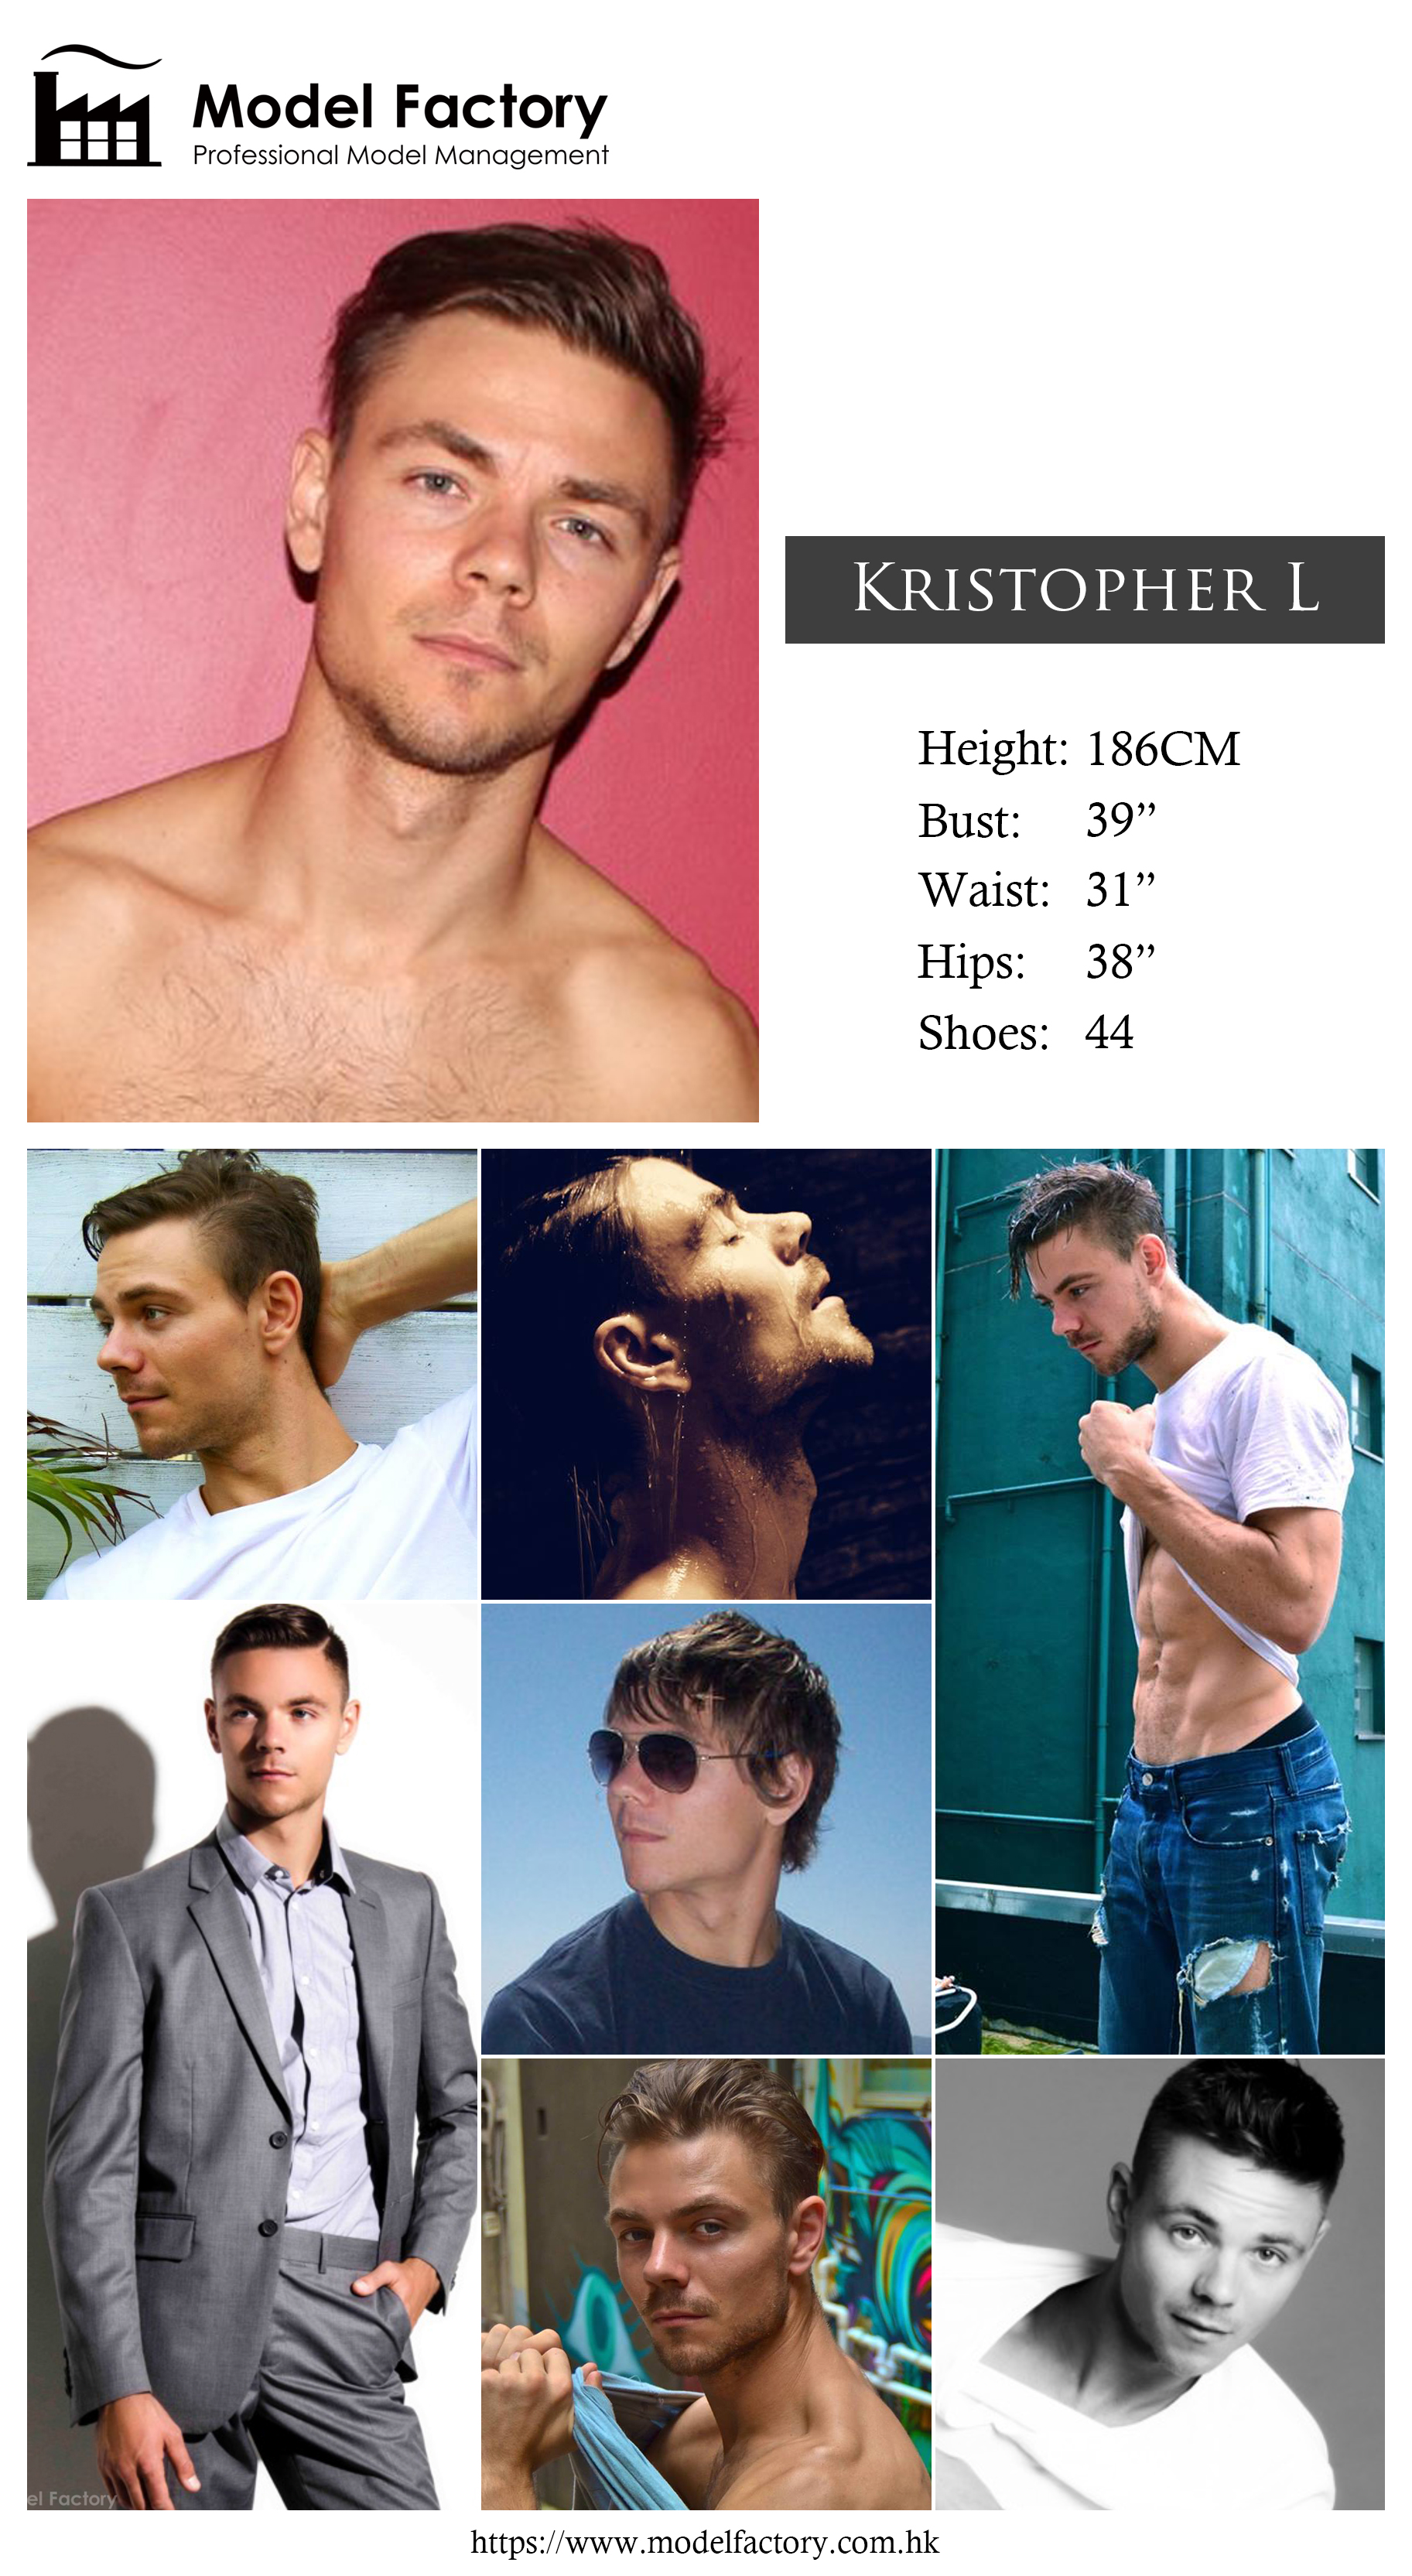 Model Factory Caucasian Male Model KristopherL